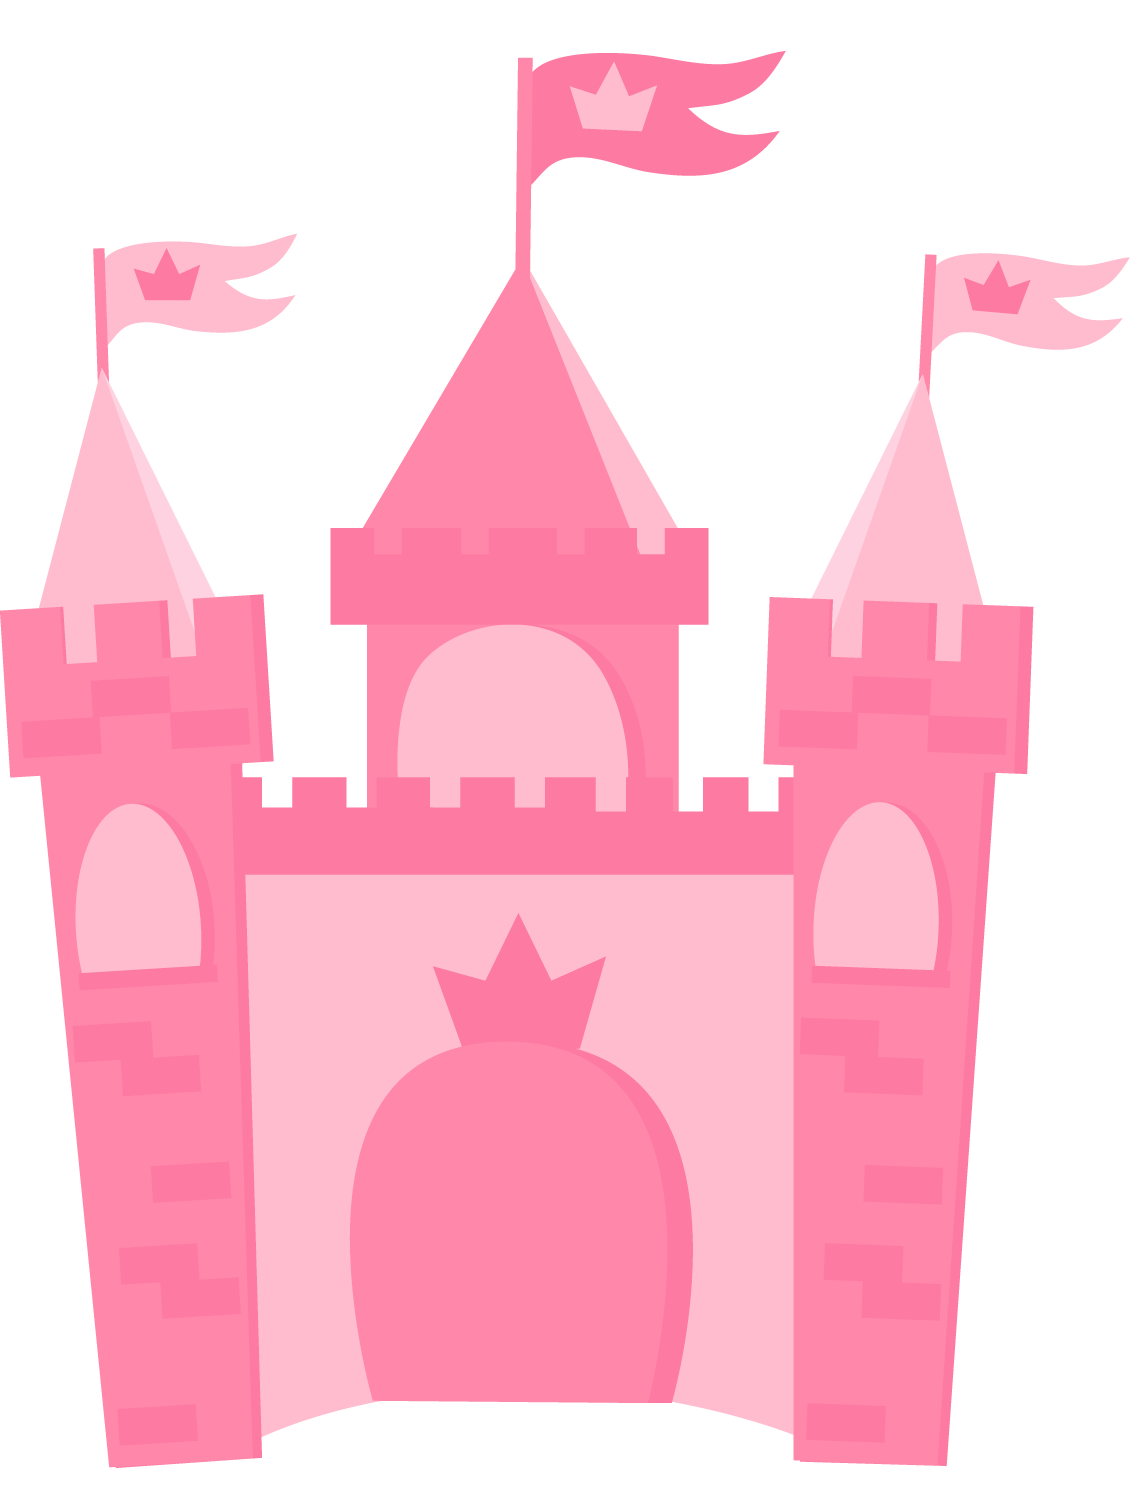 Free Castle Download Images Png image #30649